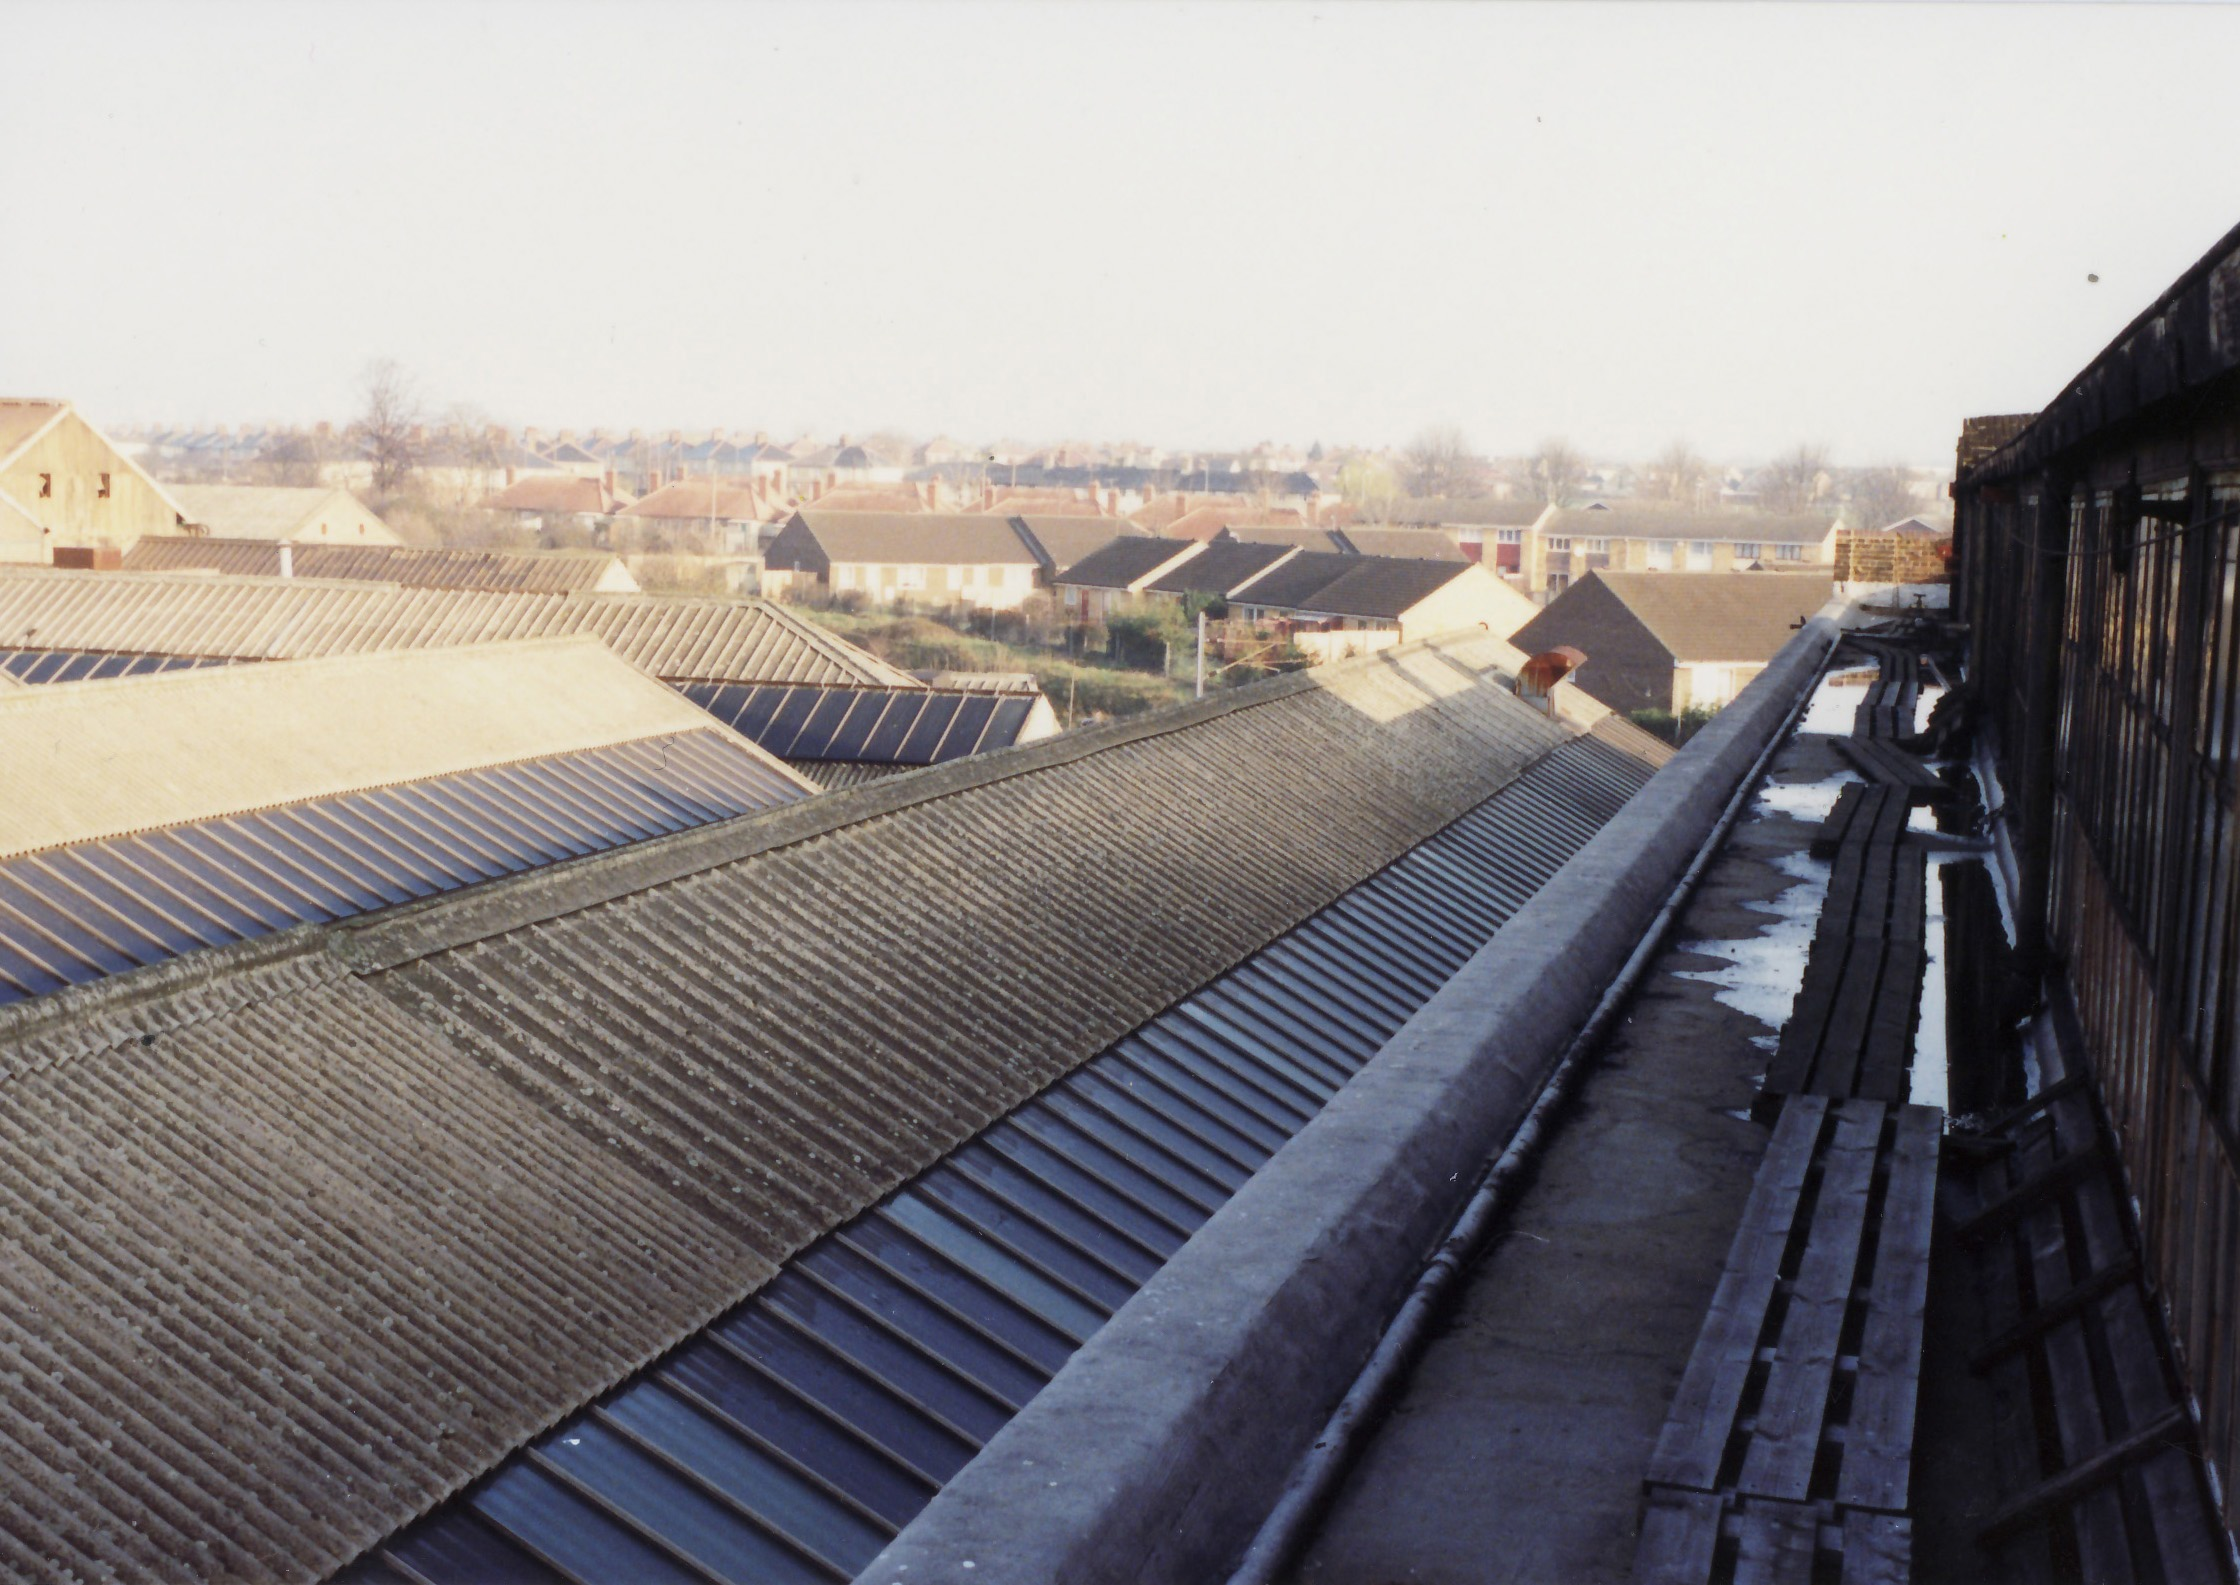 p-065-21-crittalls-walkway-on-the-roof